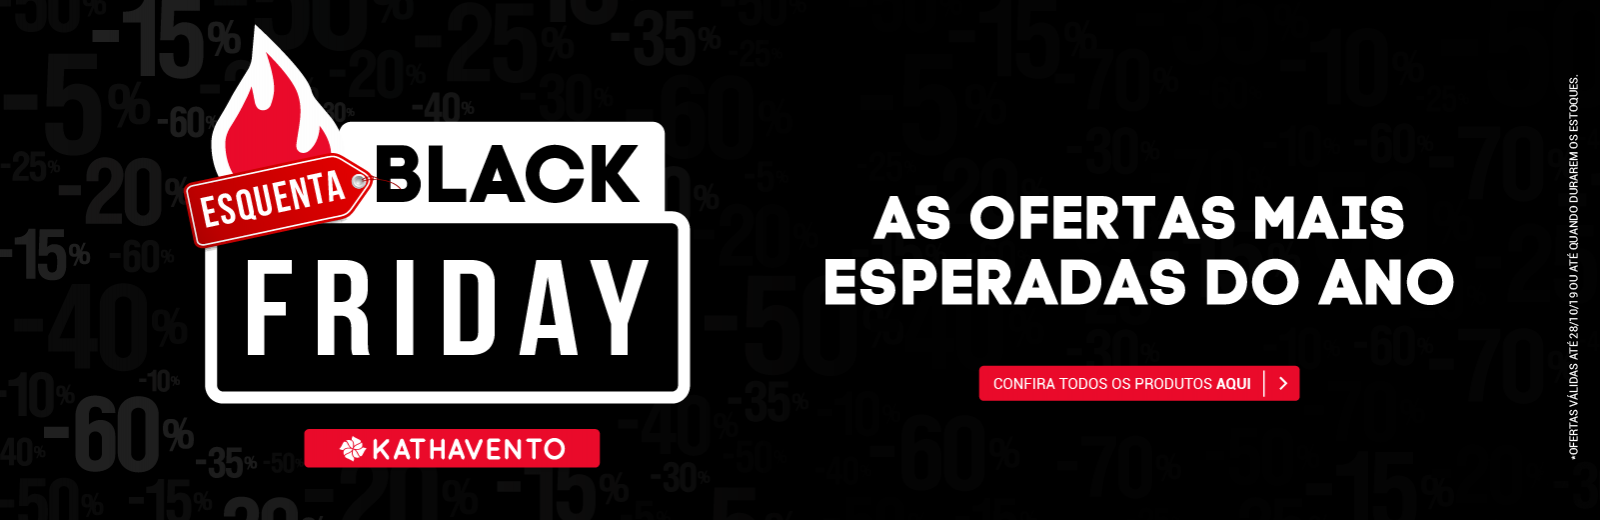 Esquenta_Black Friday